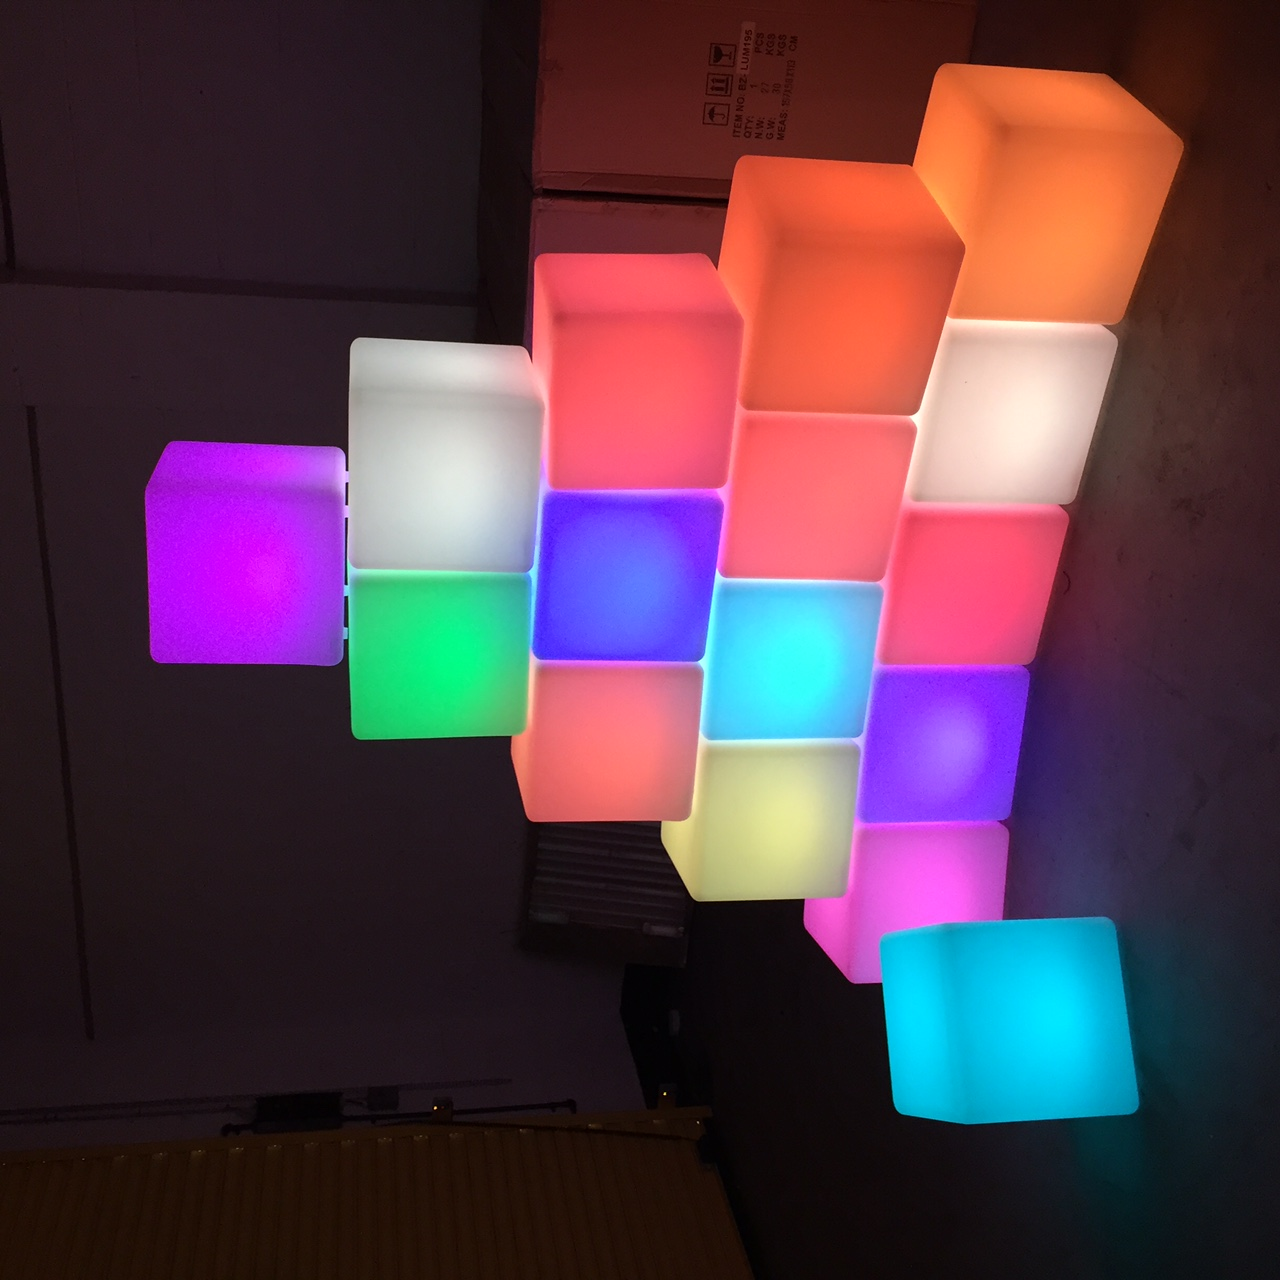 Illuminated Glowing LED Cube Hire